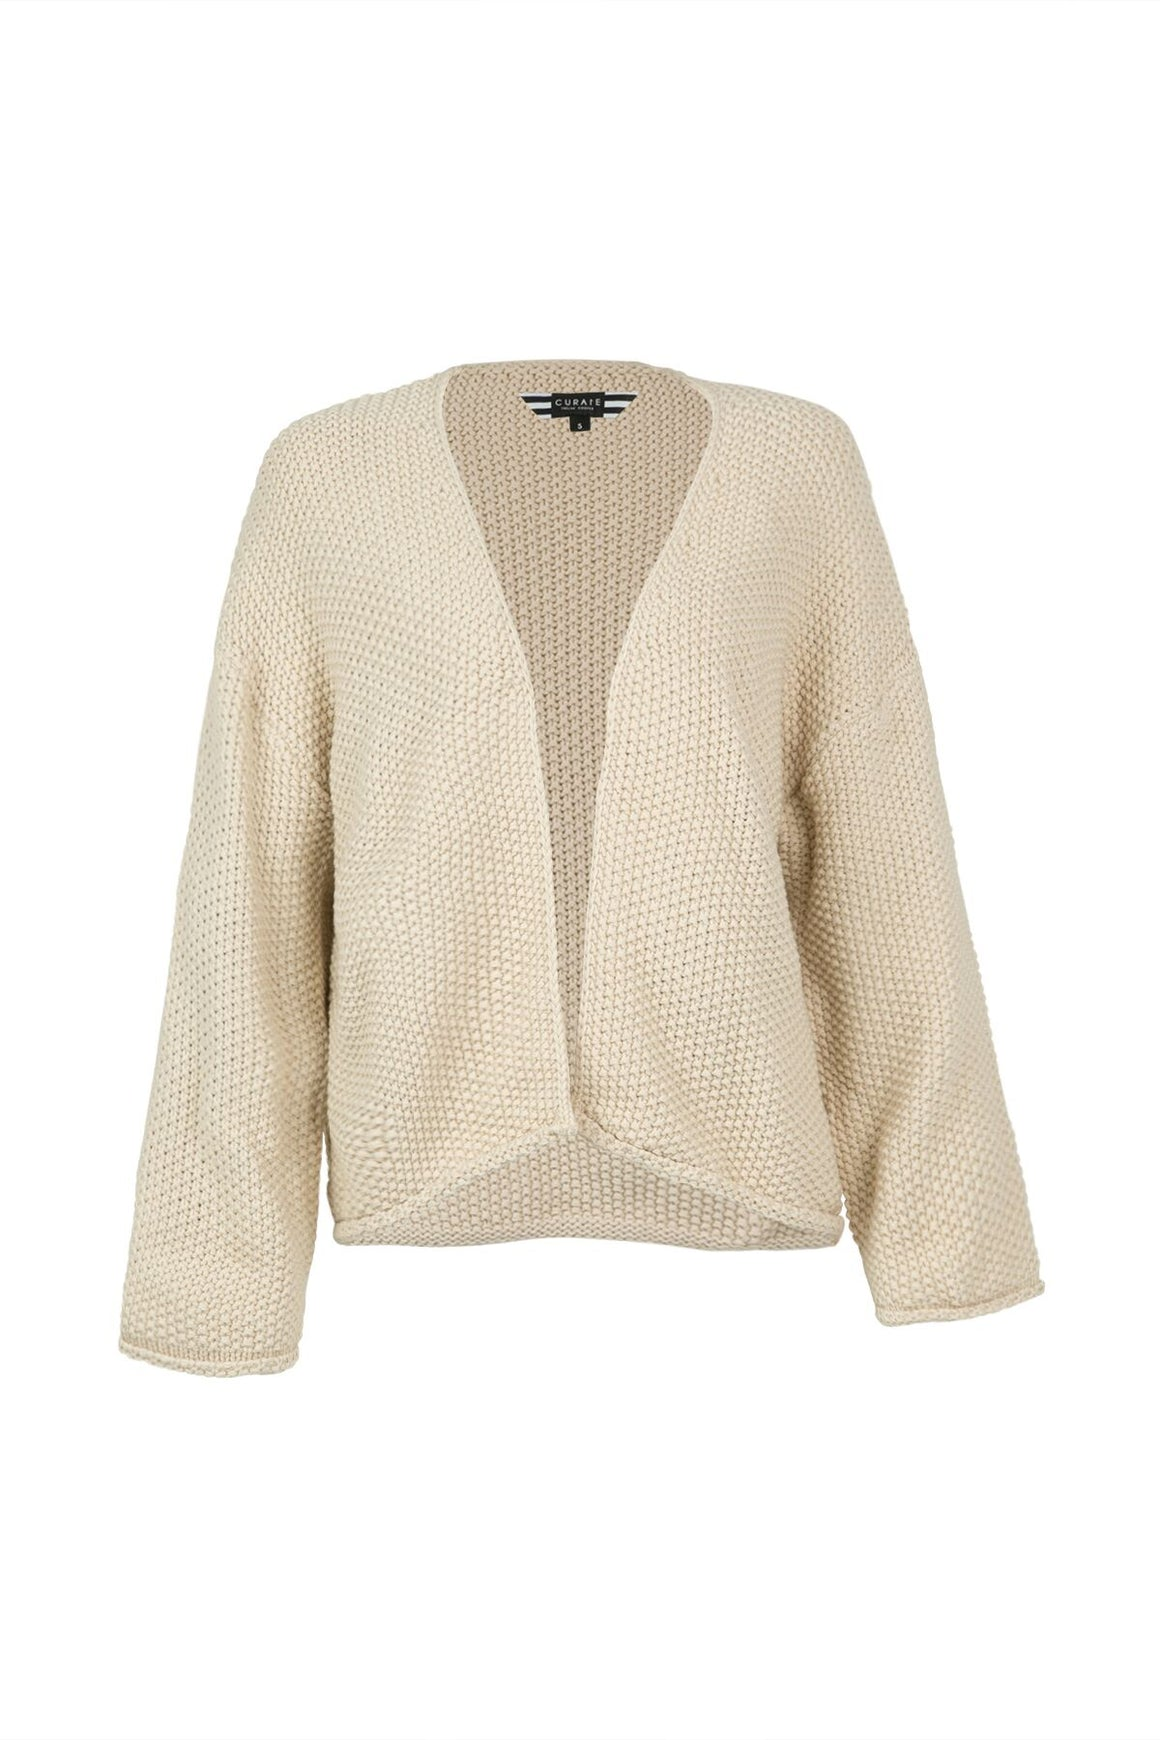 Honey Badger Cardigan - Cream | Shop Curate online & instore at W&G